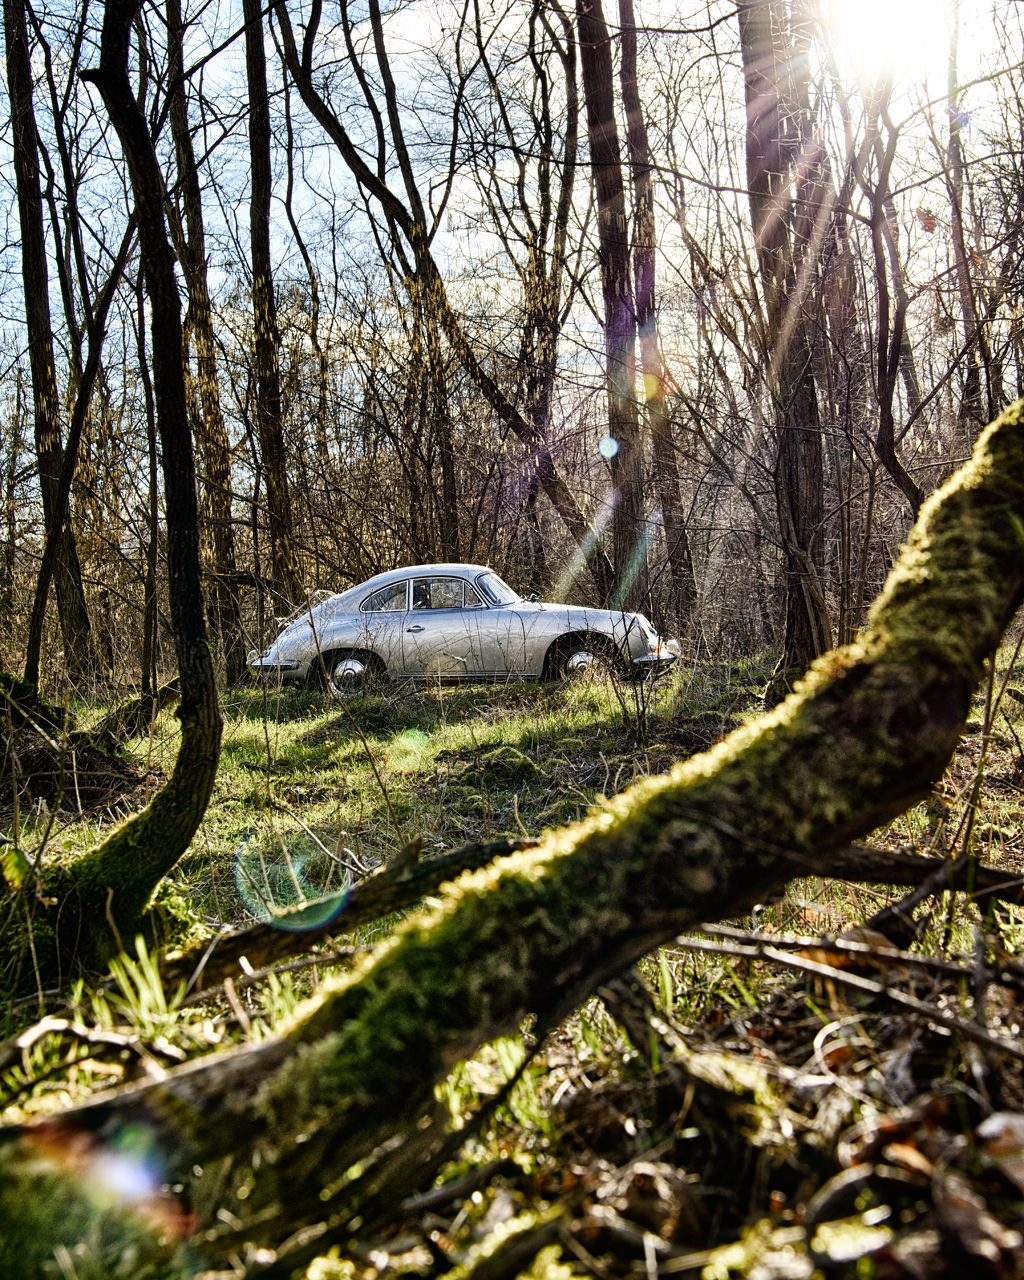 Sabine-Scheer-landscape-photography-automotive-porsche-356-racecar